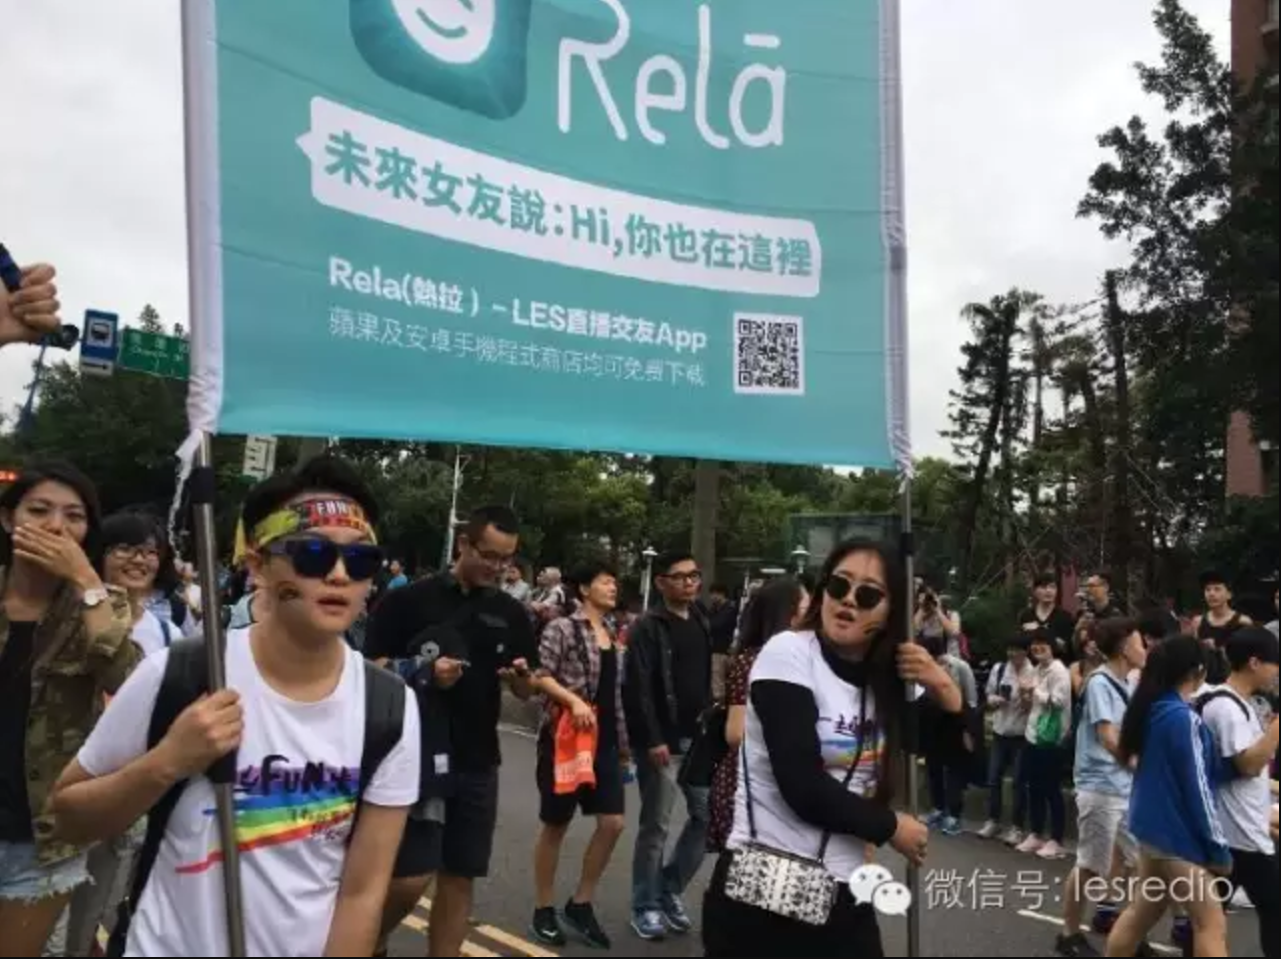 LGBT Apps, Events Shut Down in China